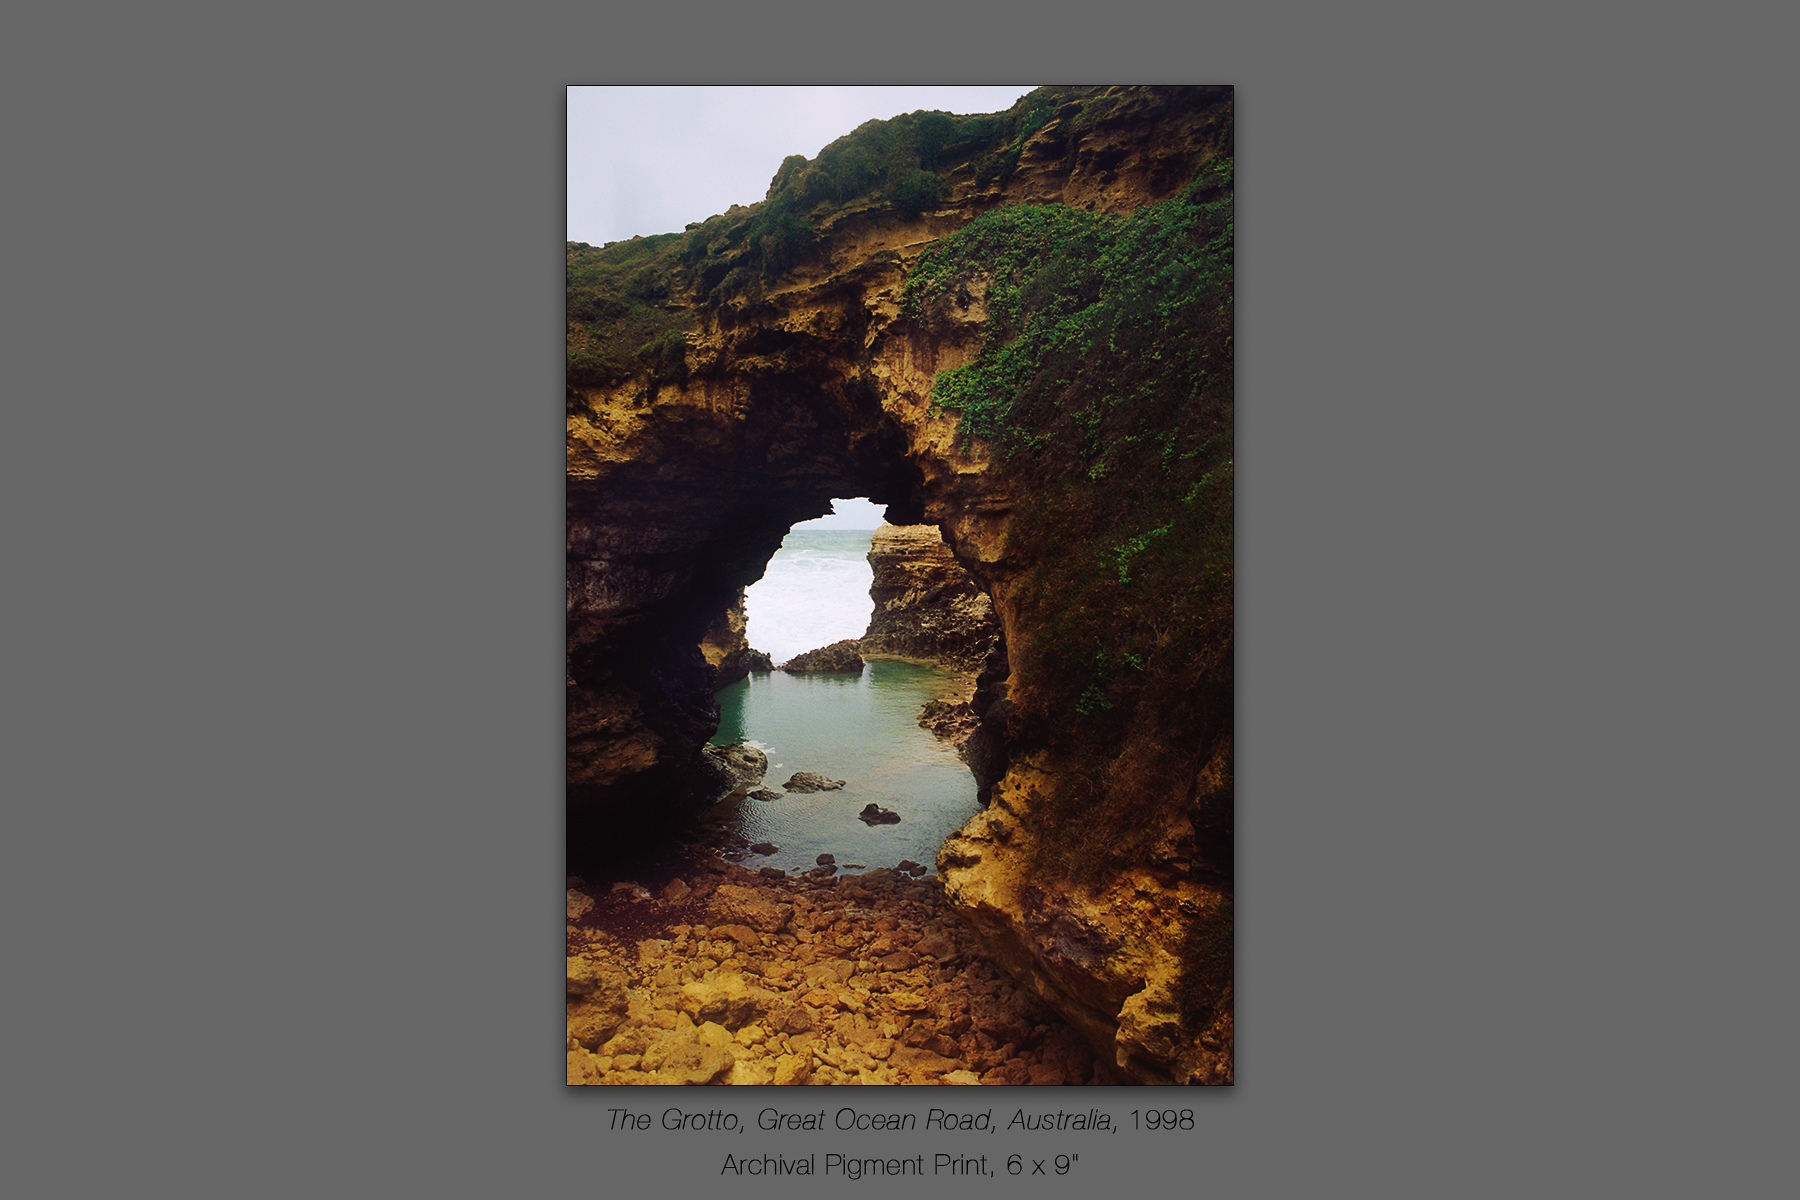 The Grotto, Great Ocean Road, Victoria, Australia,1998